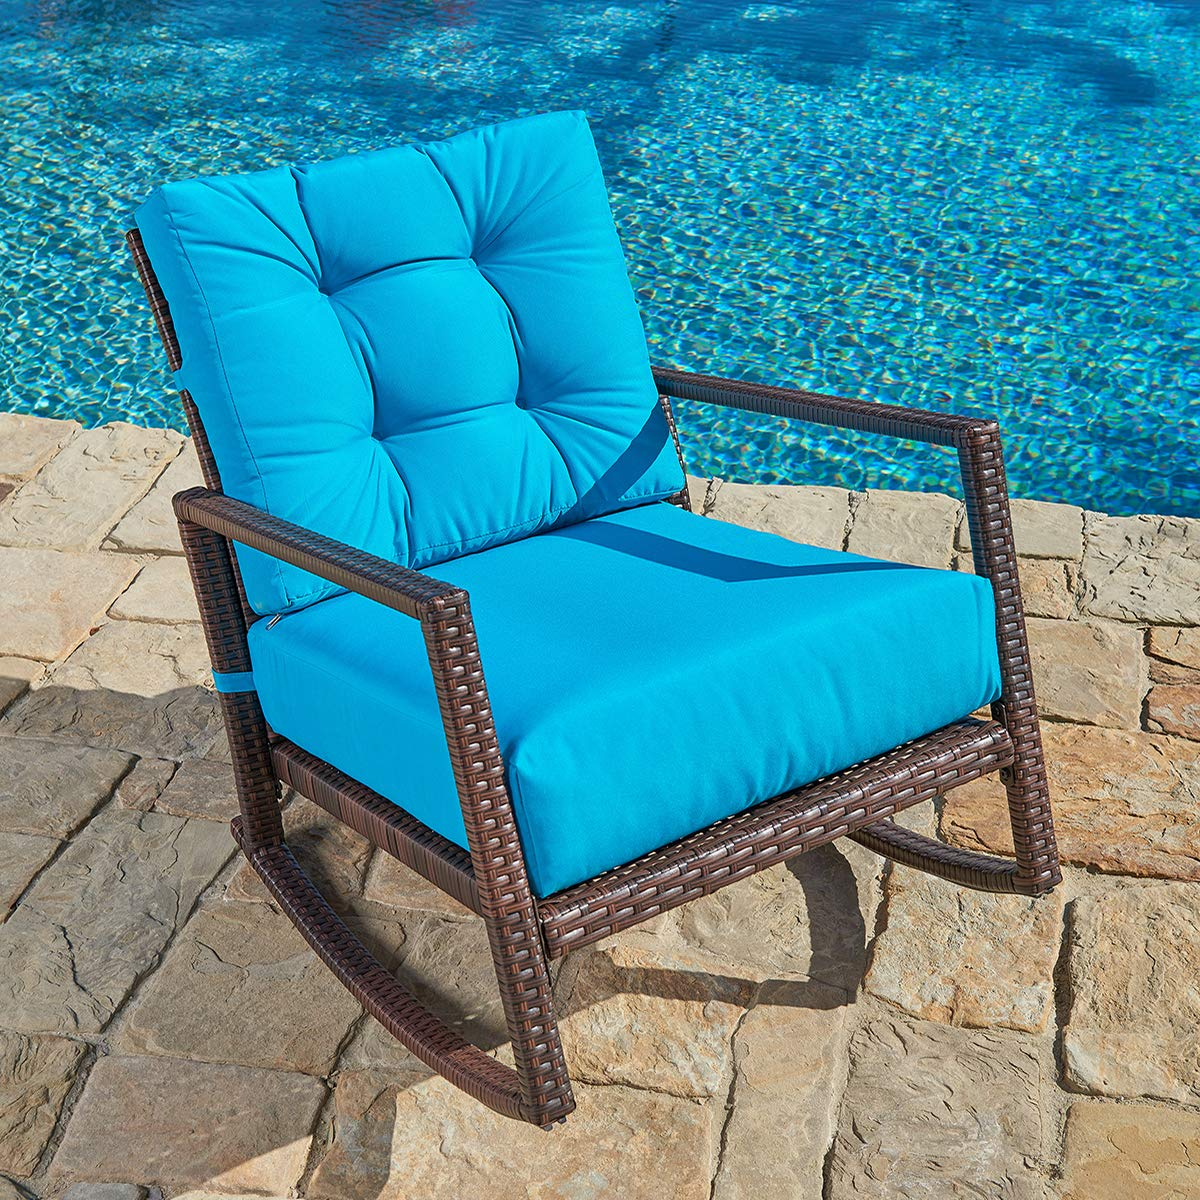 Exceptionnel SUNCROWN Patio Rocking Chair (1 Piece) Outdoor Furniture Teal Wicker Seat  With Thick, Washable Cushions | Backyard, Pool, Porch | Smooth Gliding ...